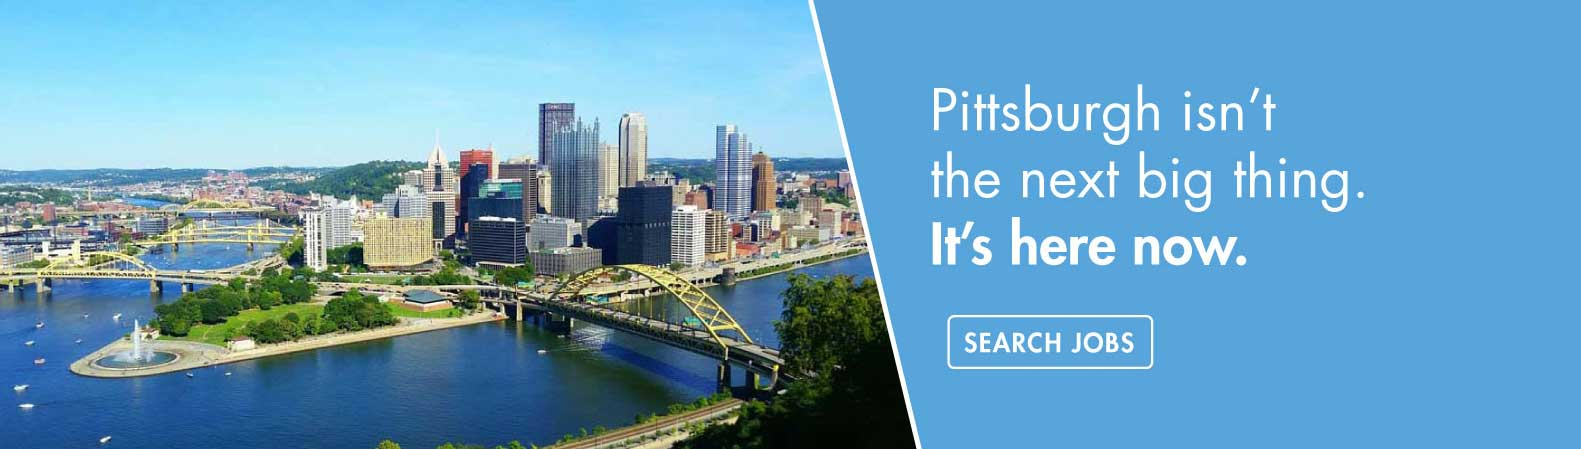 Pittsburgh isn't the next big thing. It's here now.